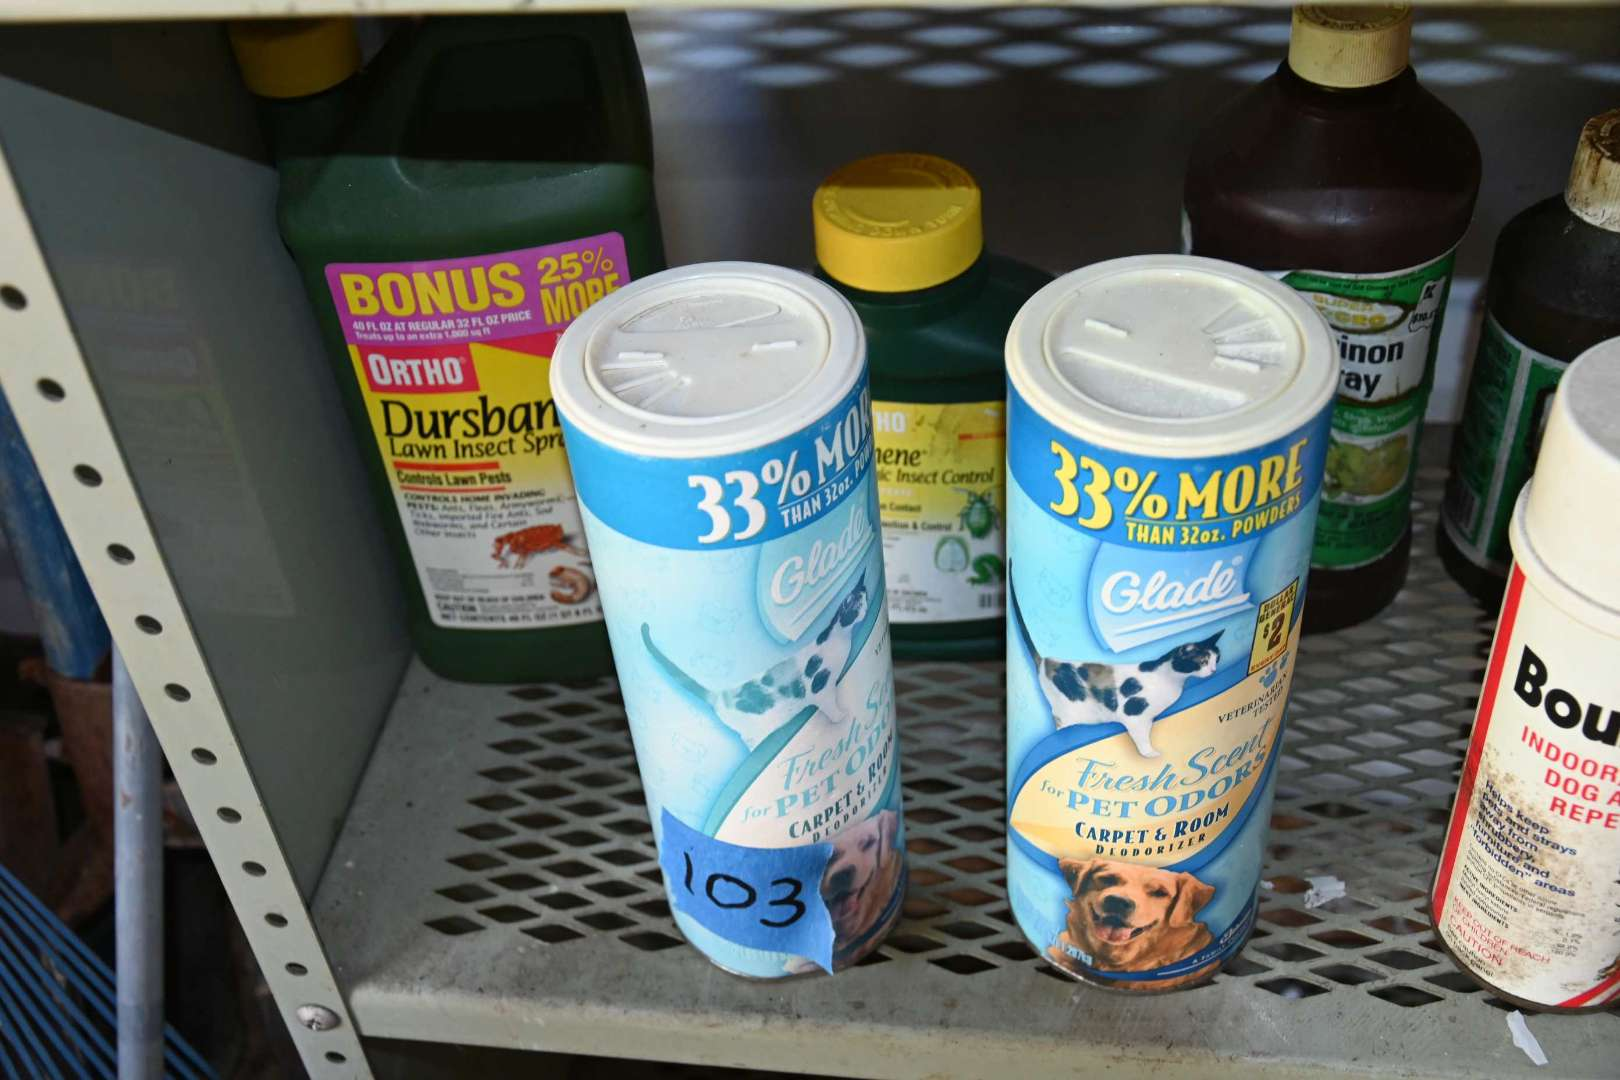 Lot # 103 Contents of shelf, spray bottles, insecticides, misc..